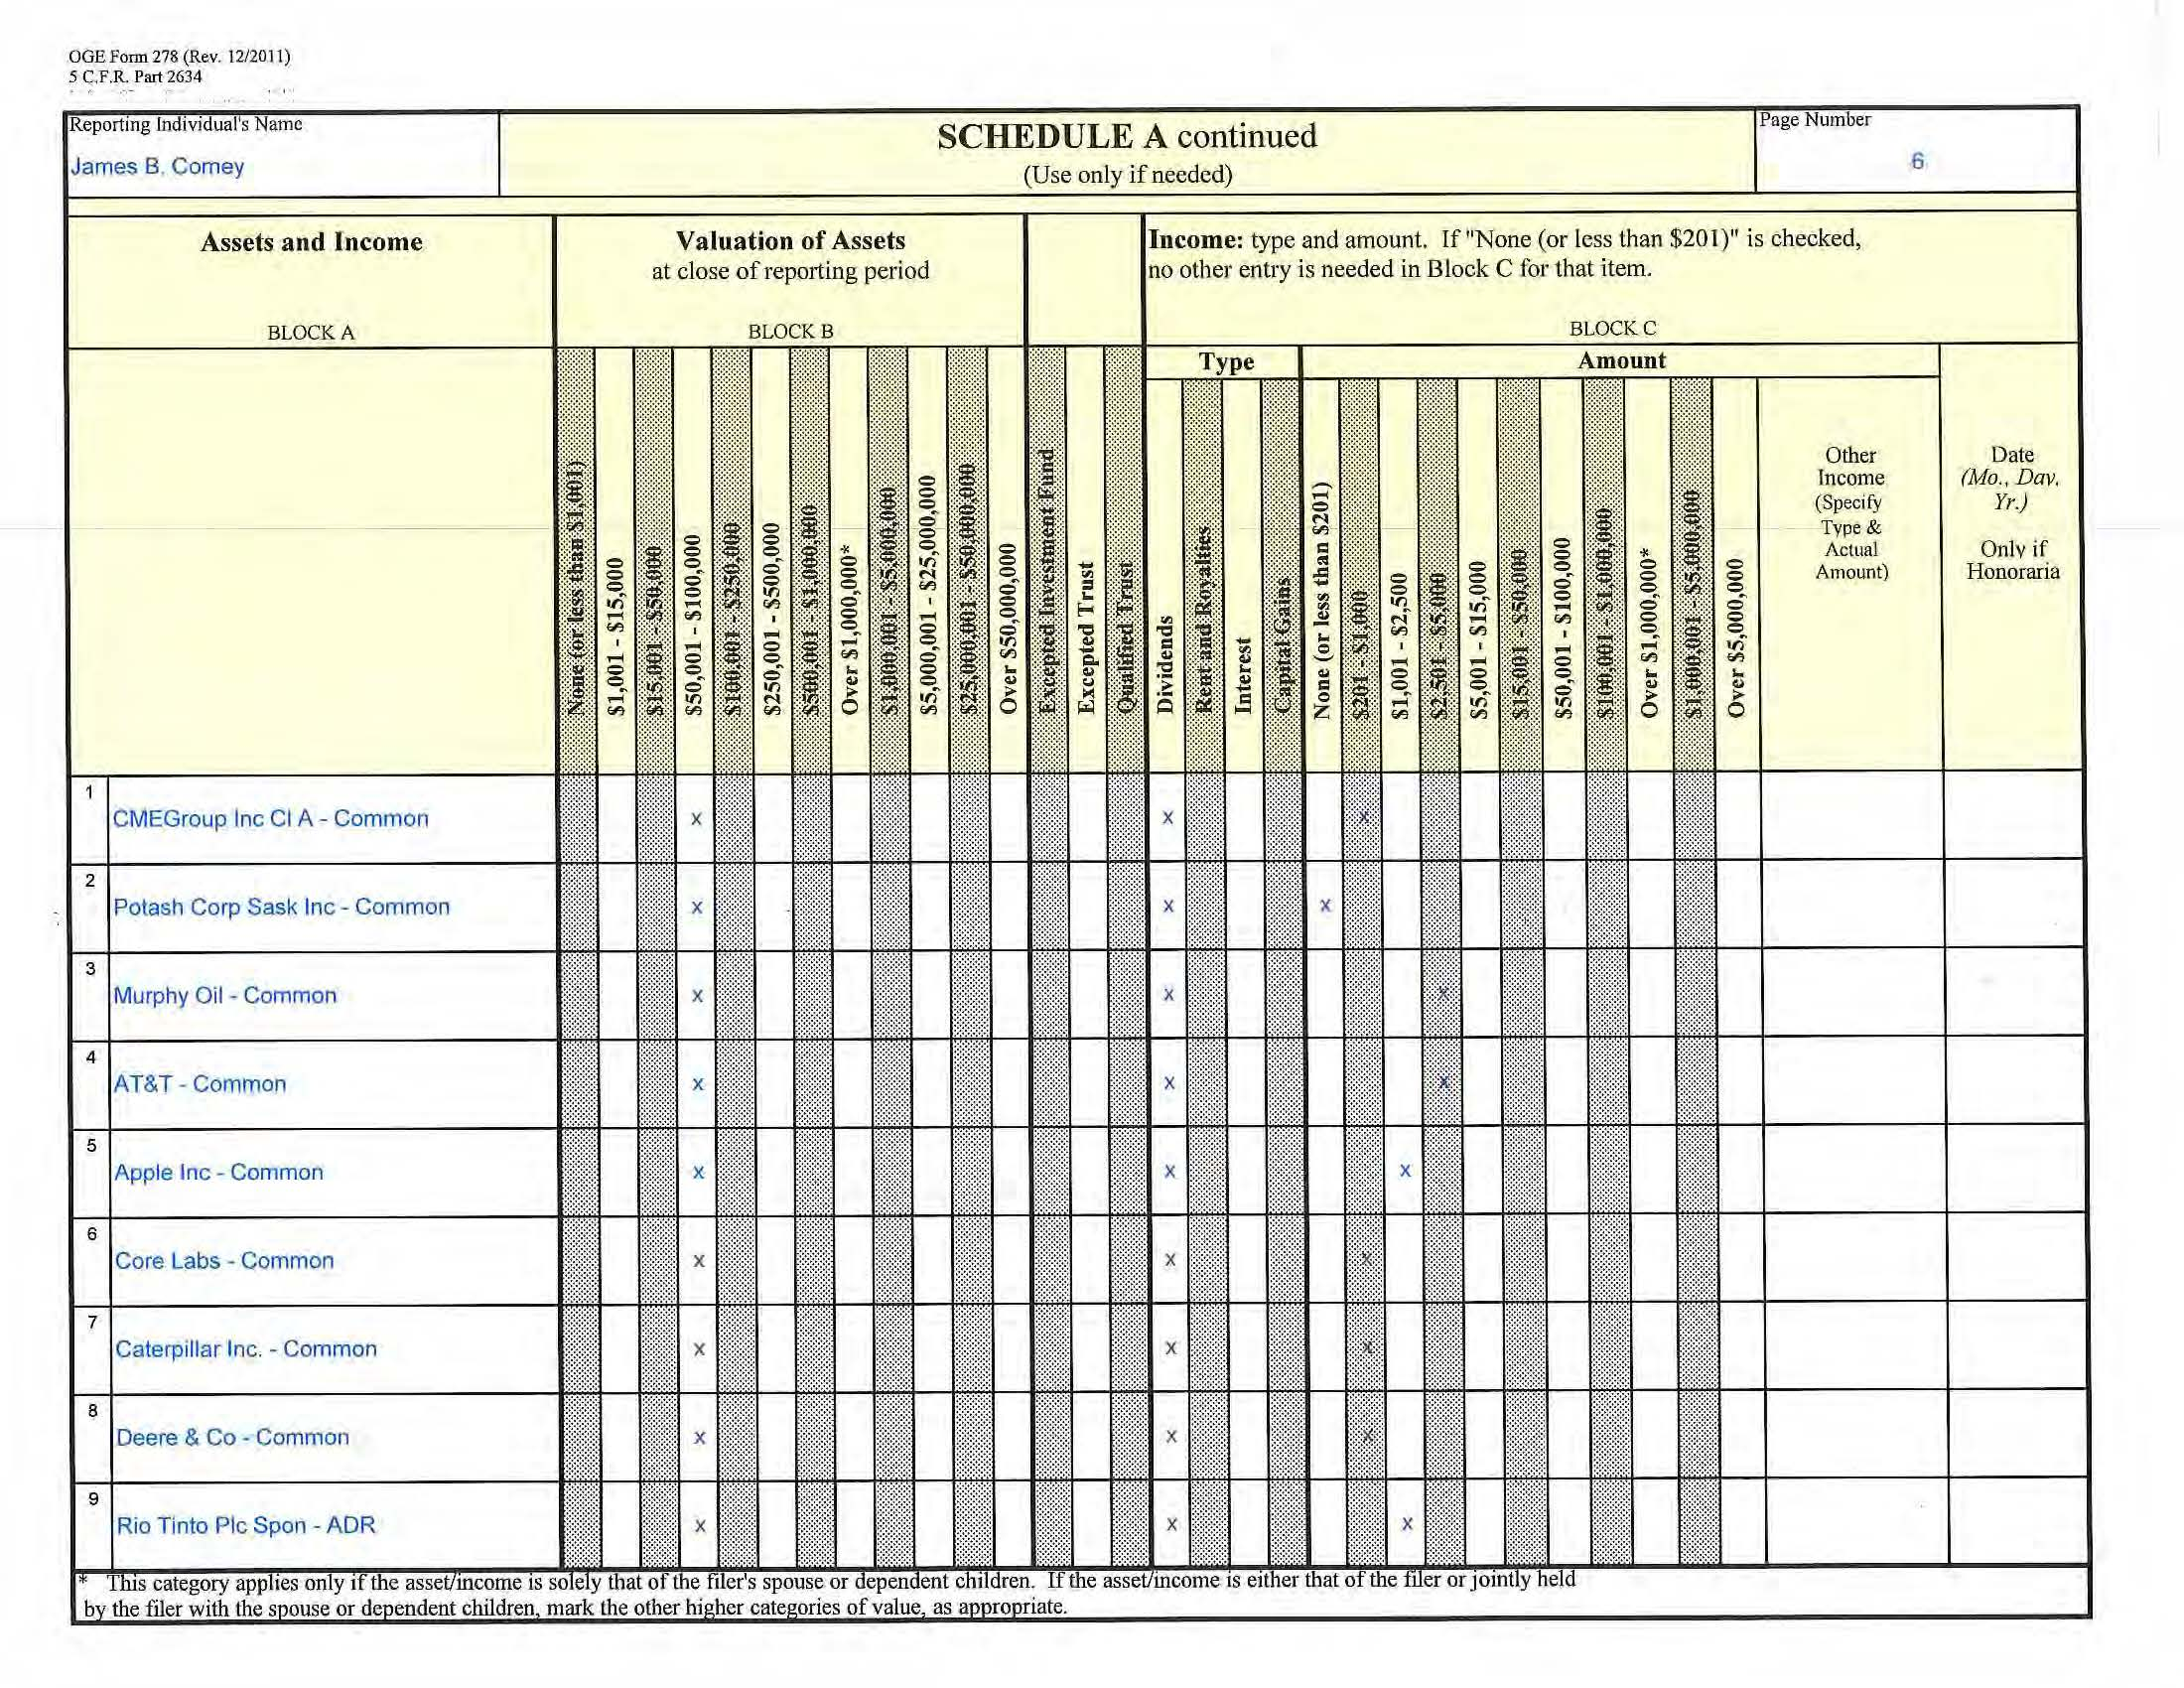 James-B-Comey-2013Form278NewEntrant_Page_06.jpg